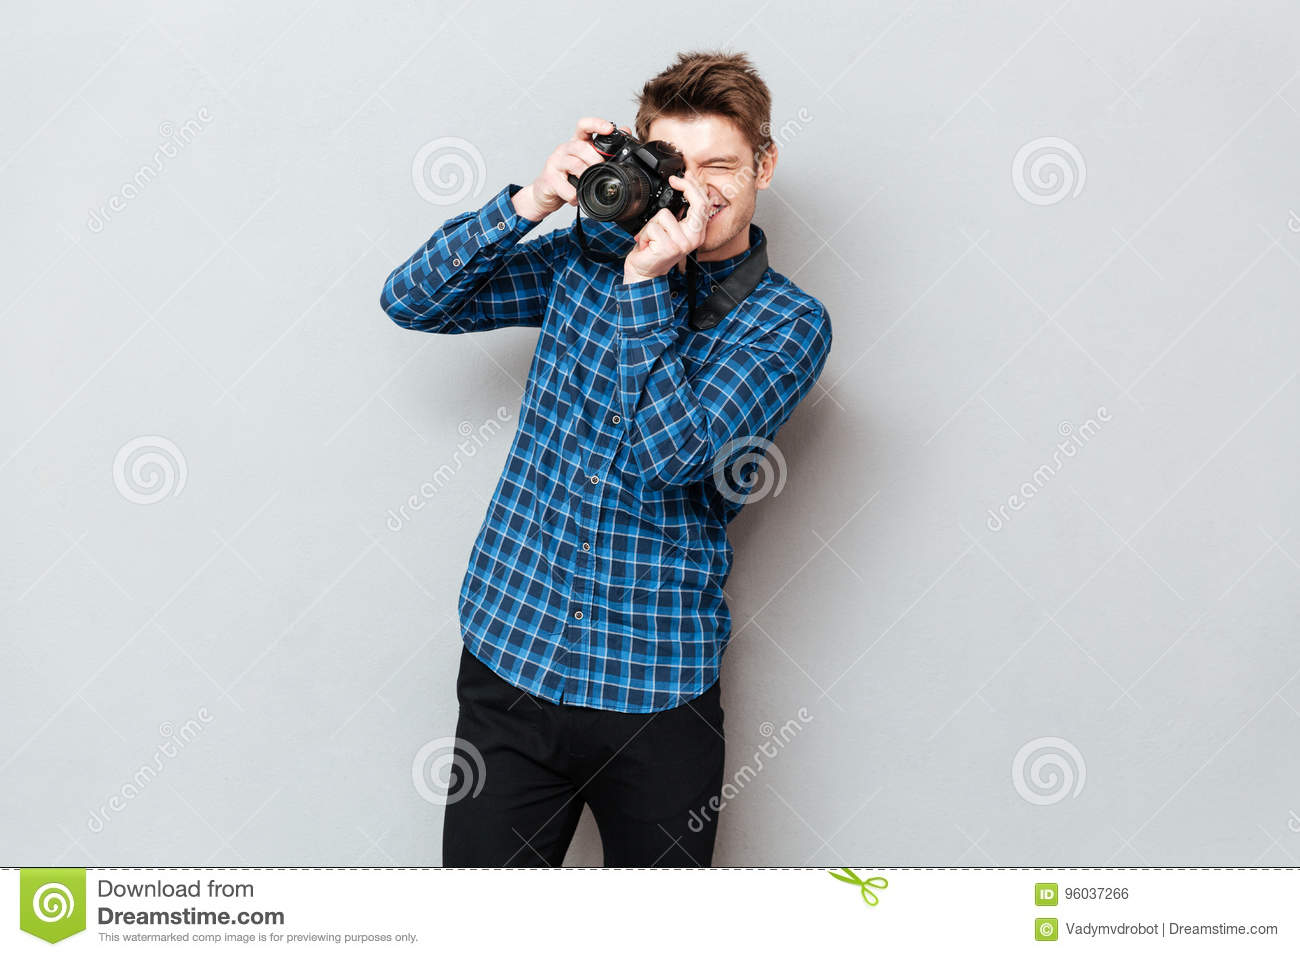 Young man with camera making photo